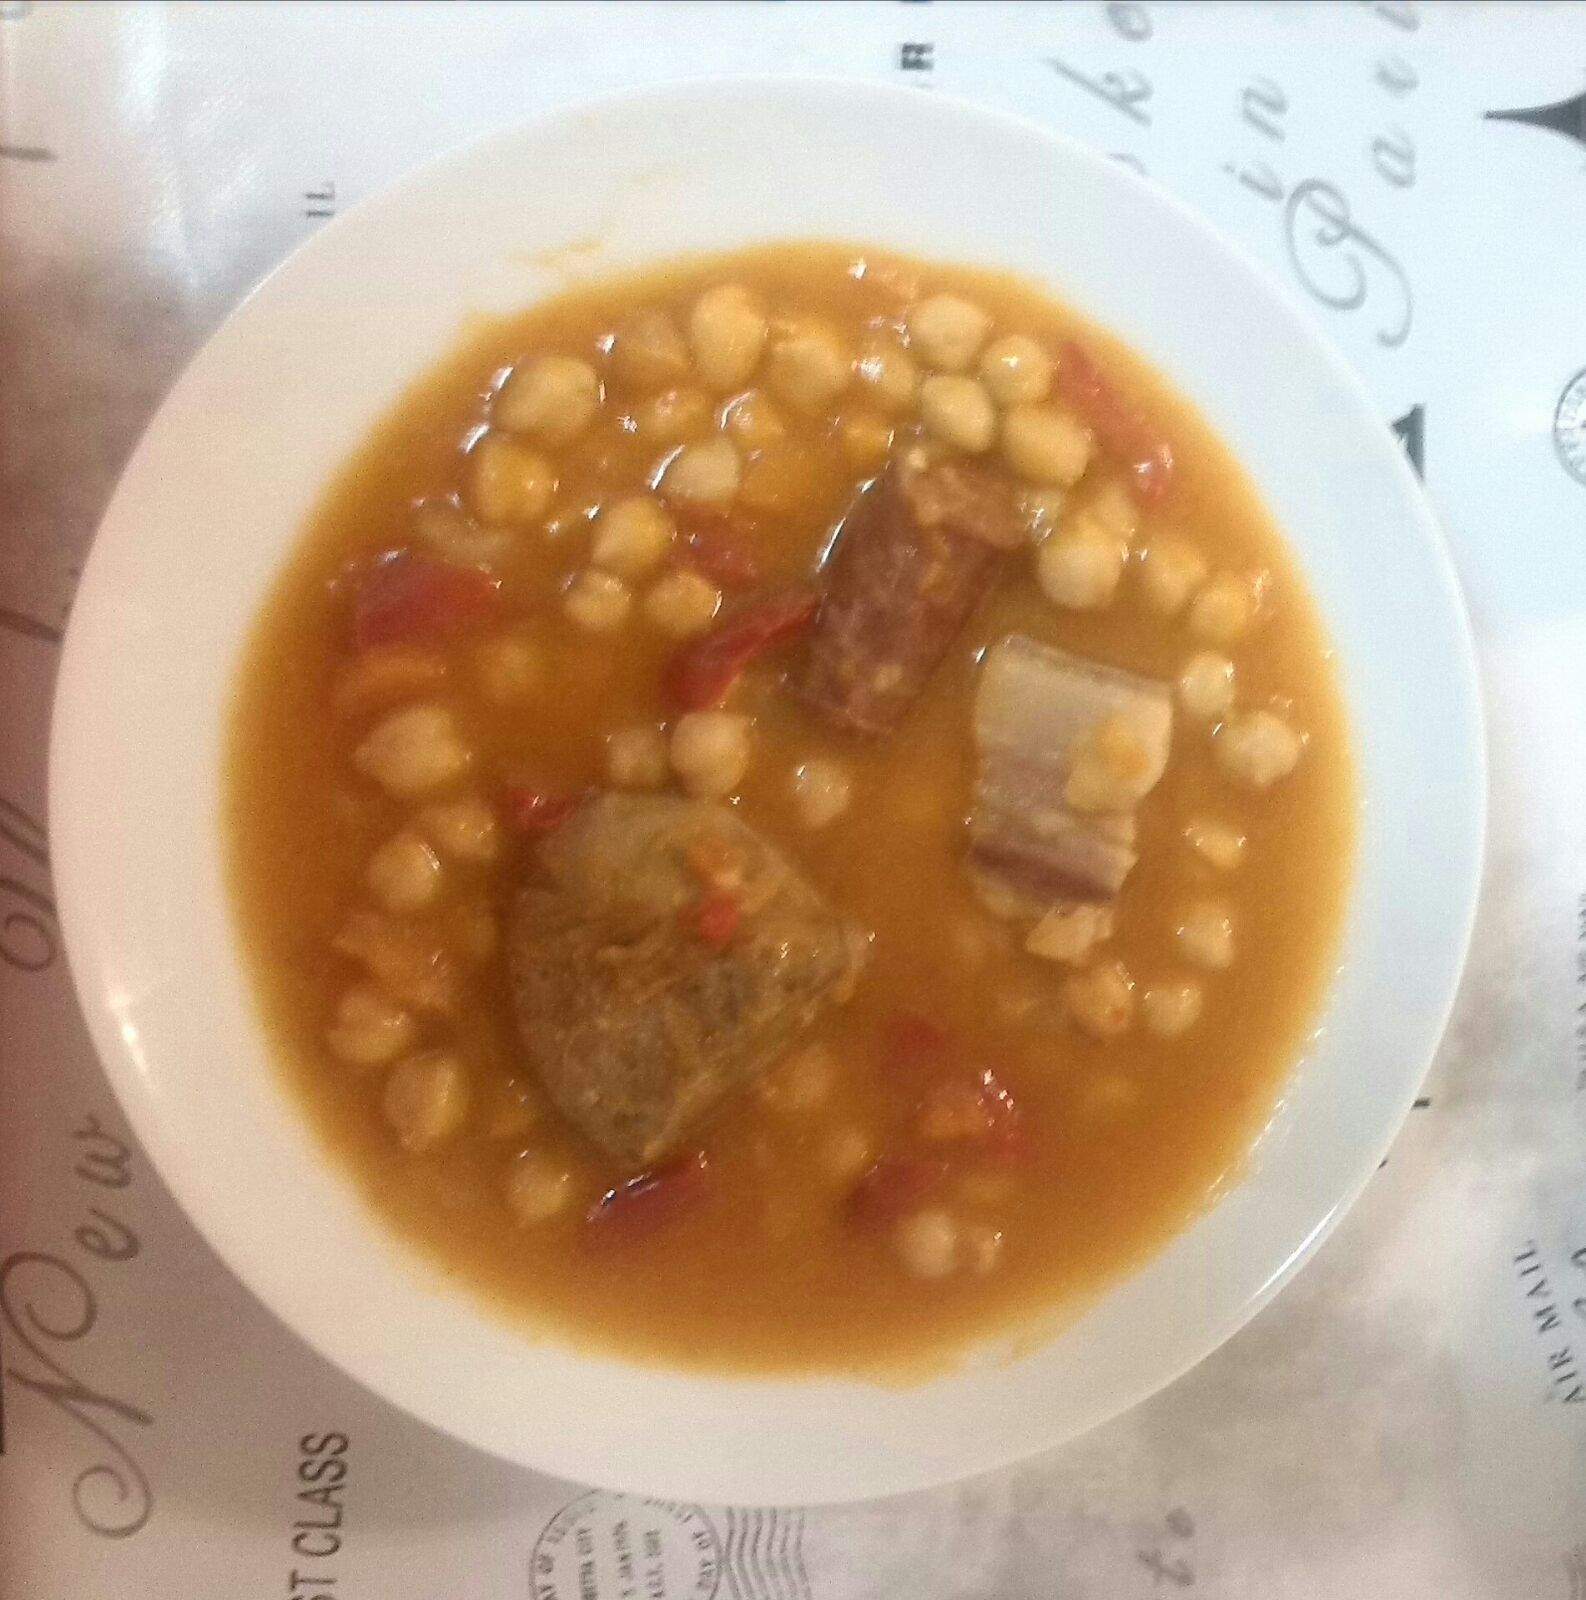 Pucheros de barro potage extreme o catalan - Pucheros de barro ...